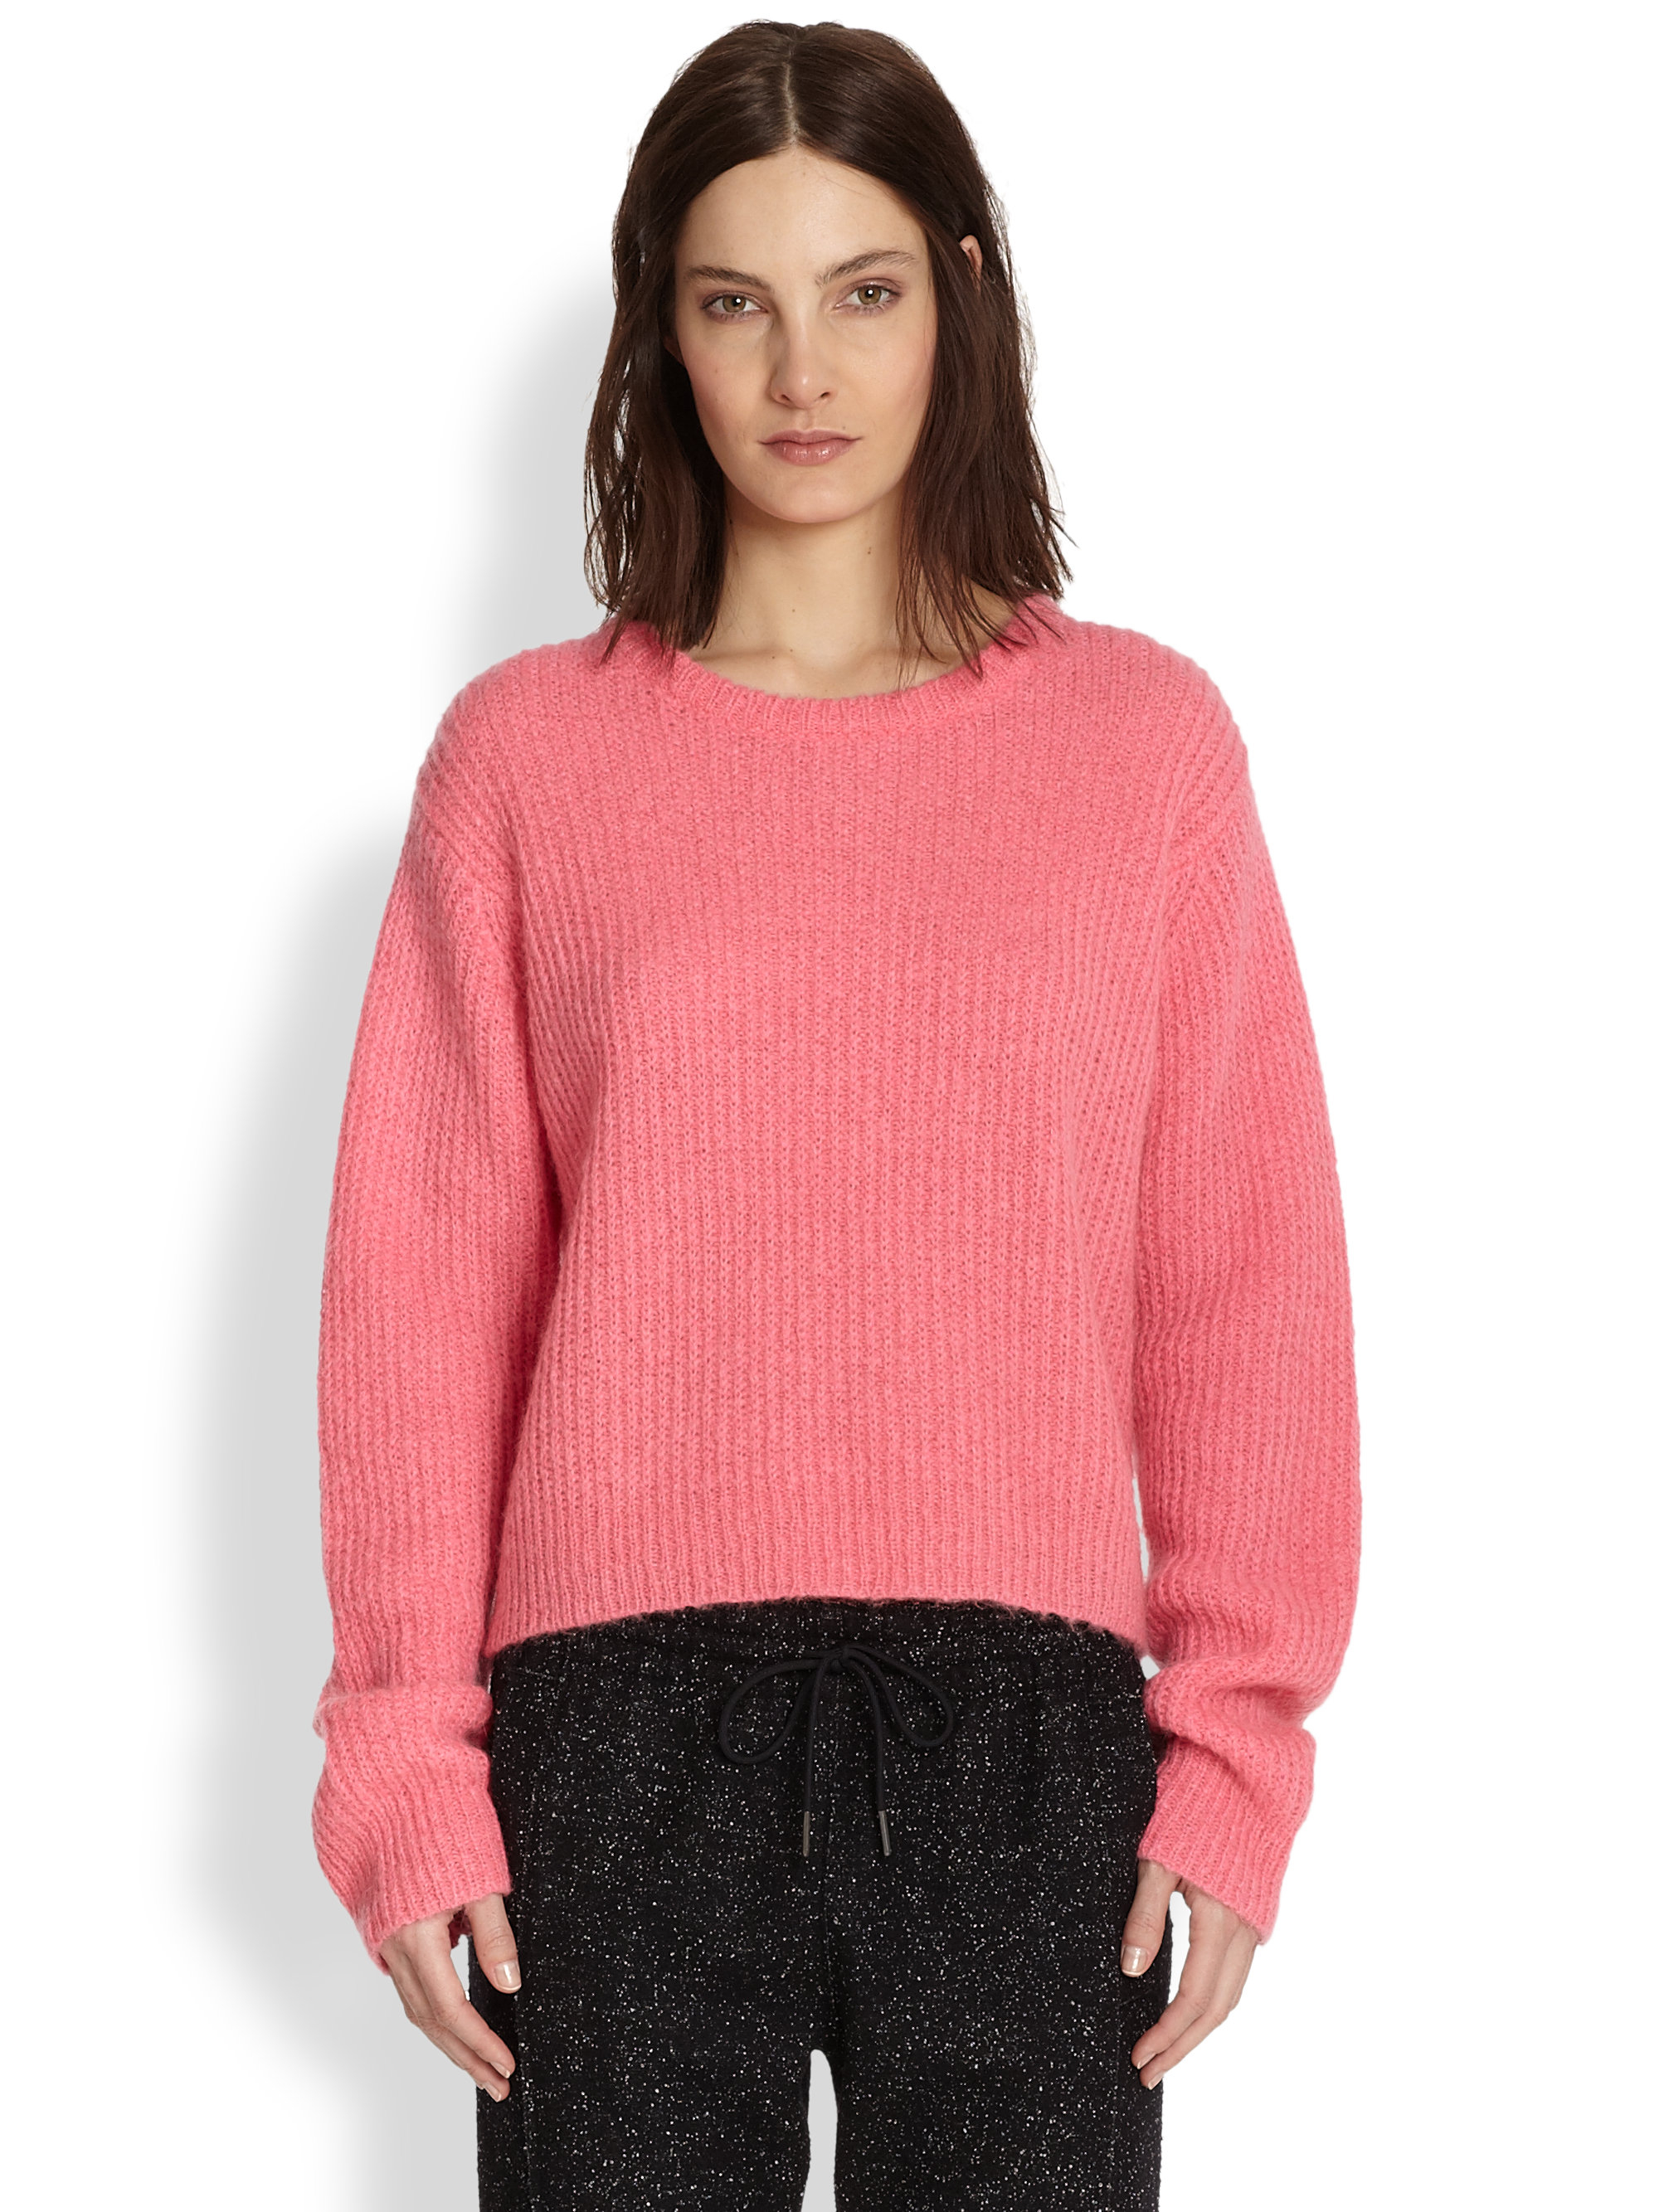 T by alexander wang Oversized Ribbed Sweater in Pink | Lyst